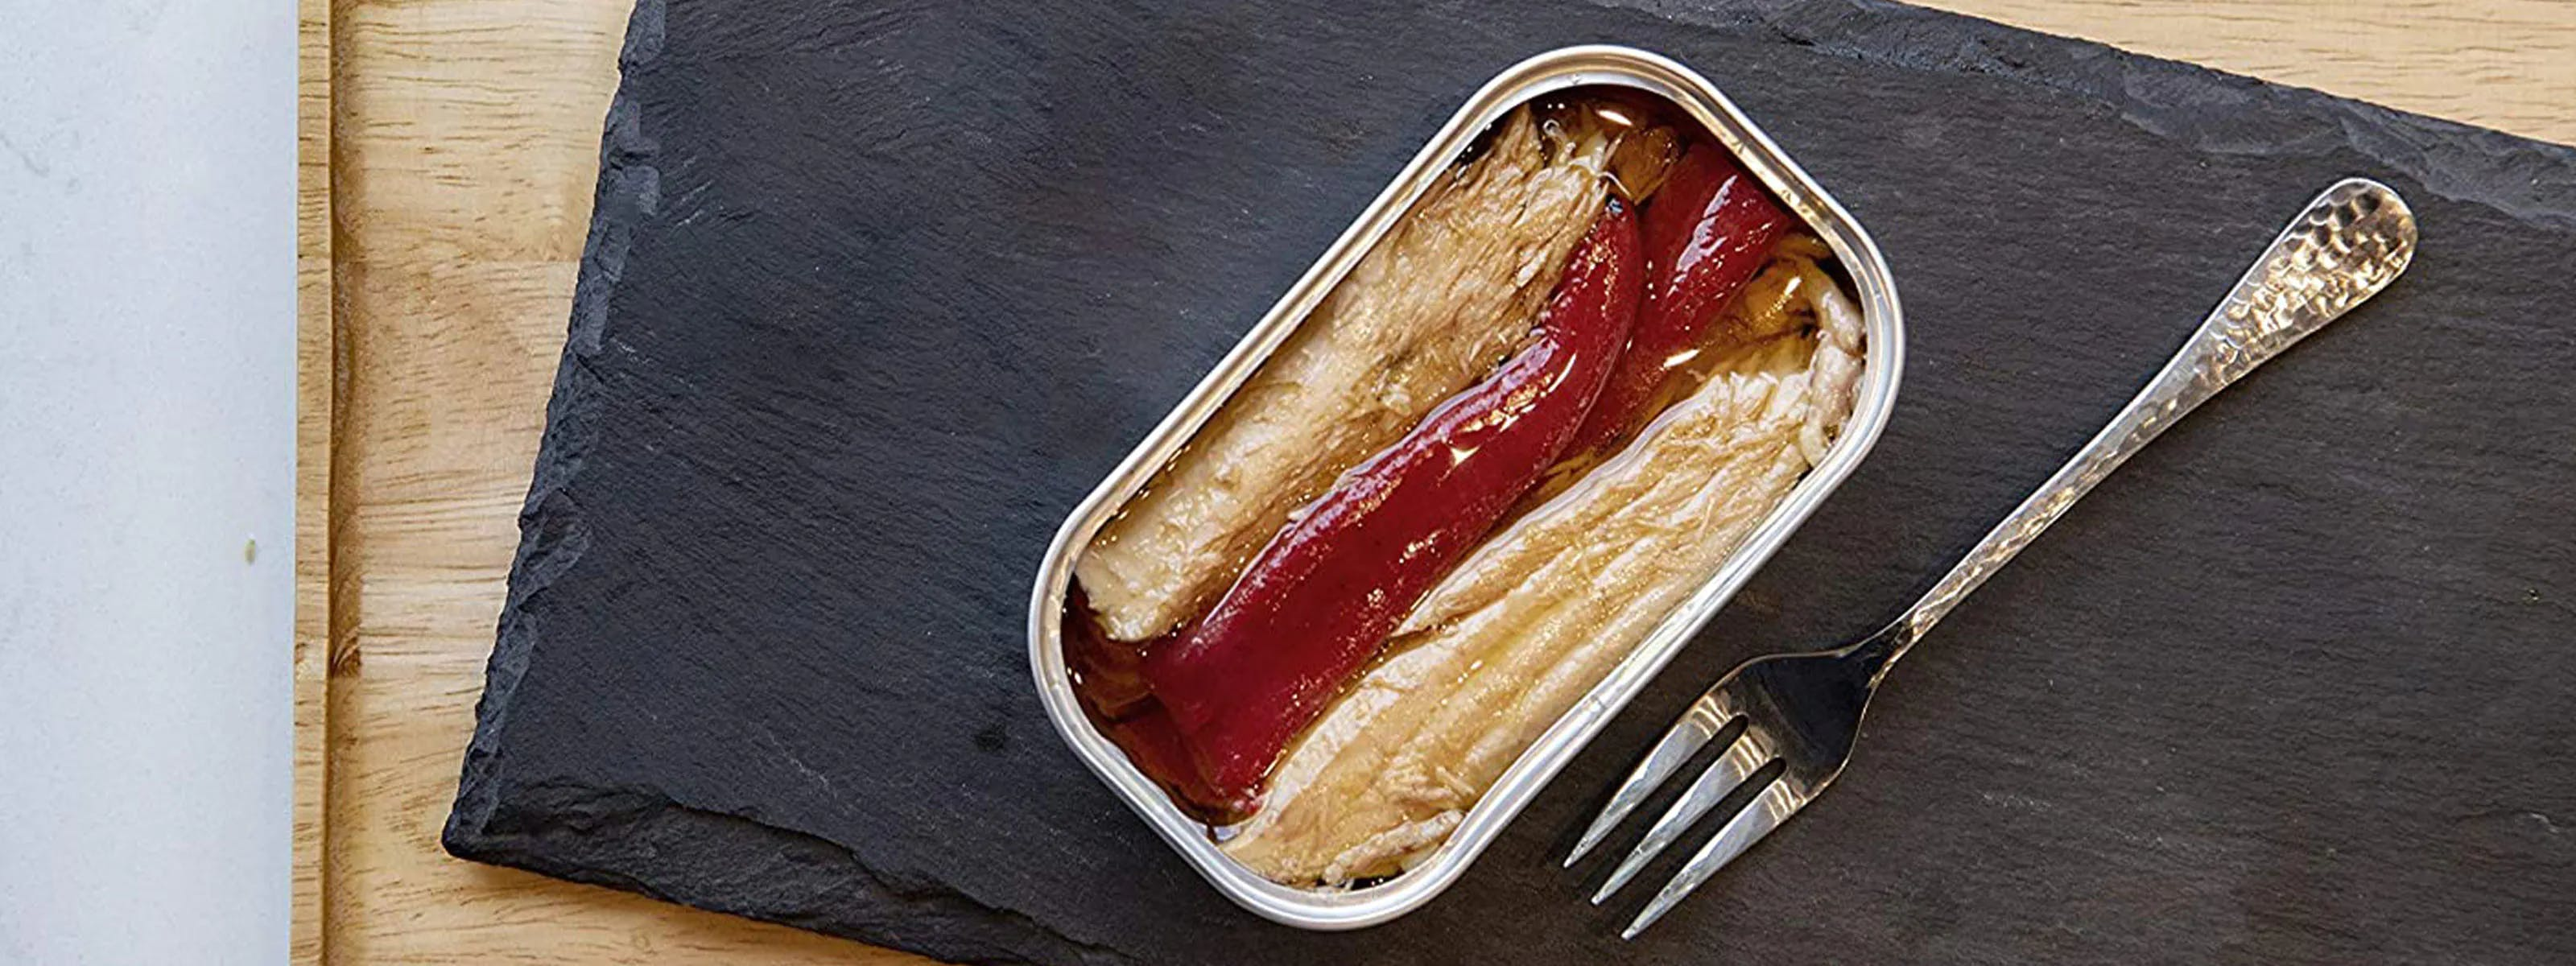 The Best Tinned and Canned Fish and Shellfish to Buy Online - Recommendations - The Infatuation